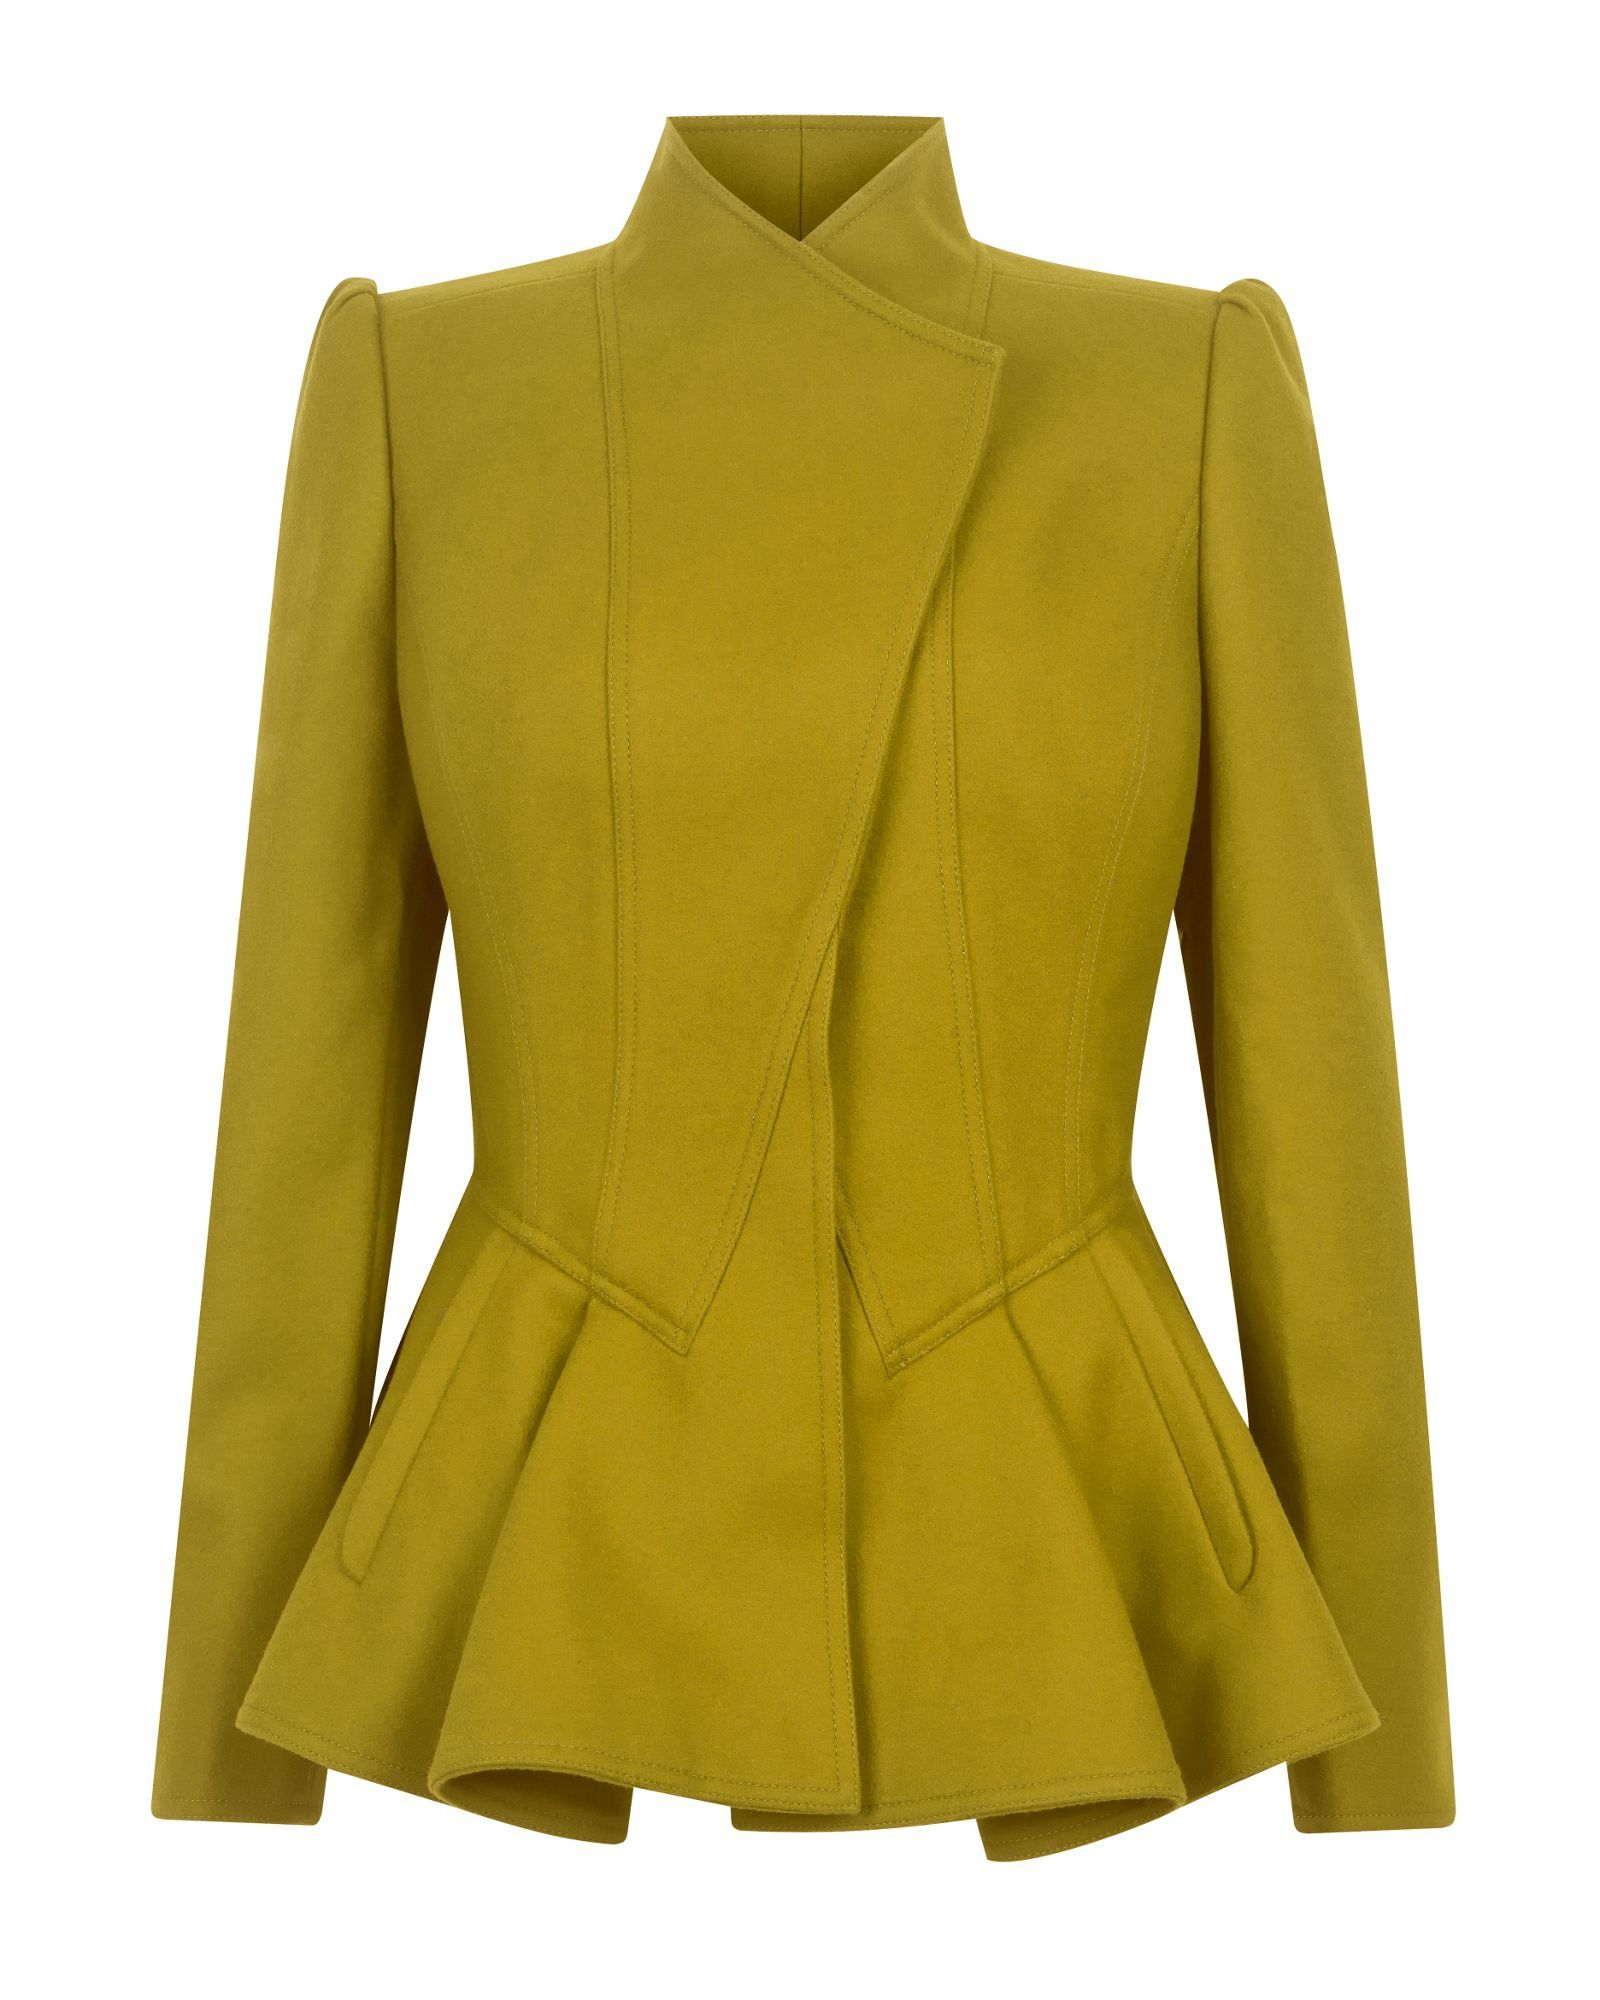 f88ad28b4 Ted baker Wrenn Wool Peplum Jacket in Green | Lyst | Fashionistas ...